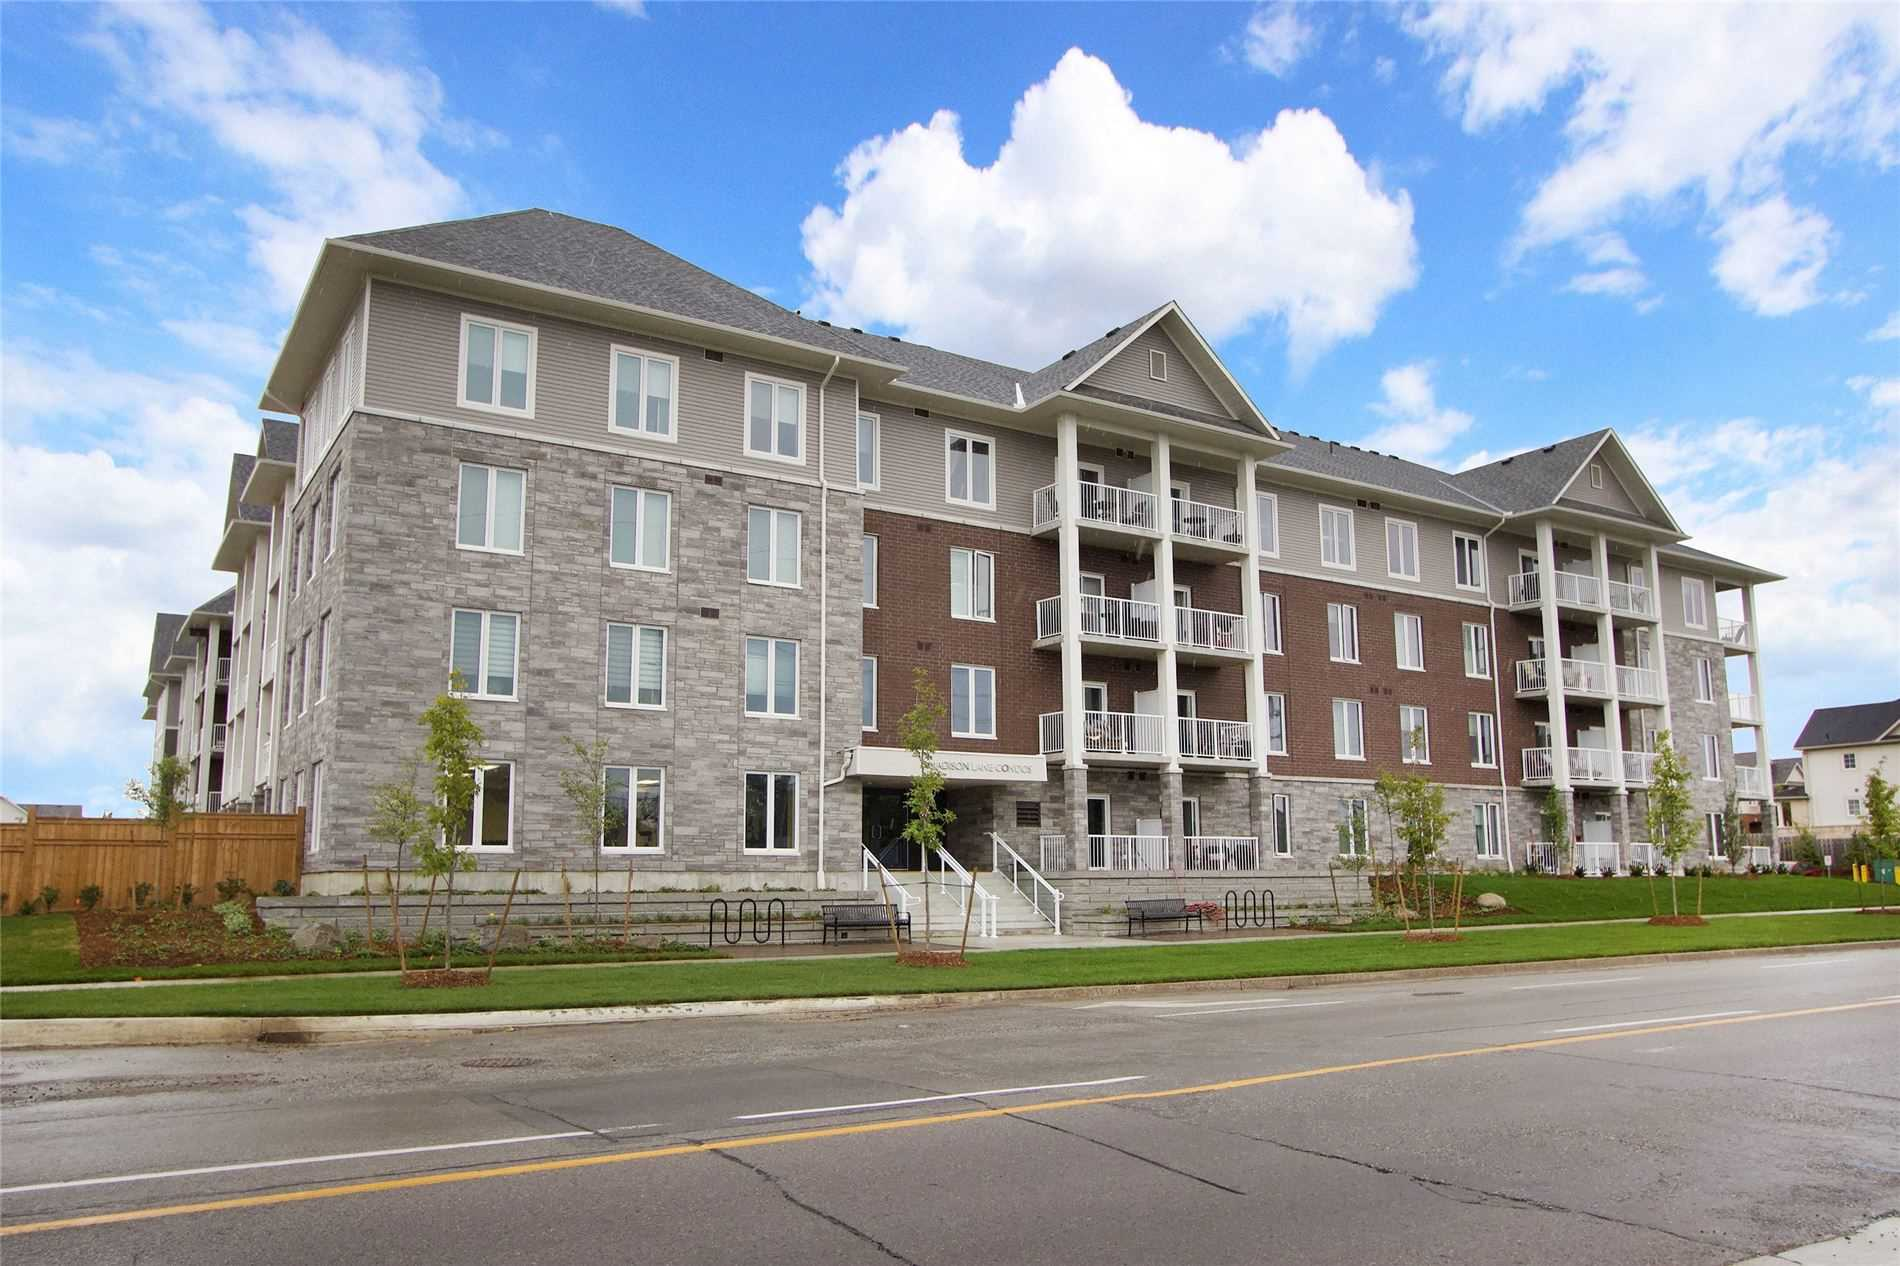 Comm Element Condo For Sale In Clarington , 2 Bedrooms Bedrooms, ,2 BathroomsBathrooms,Comm Element Condo,For Sale,321,Liberty